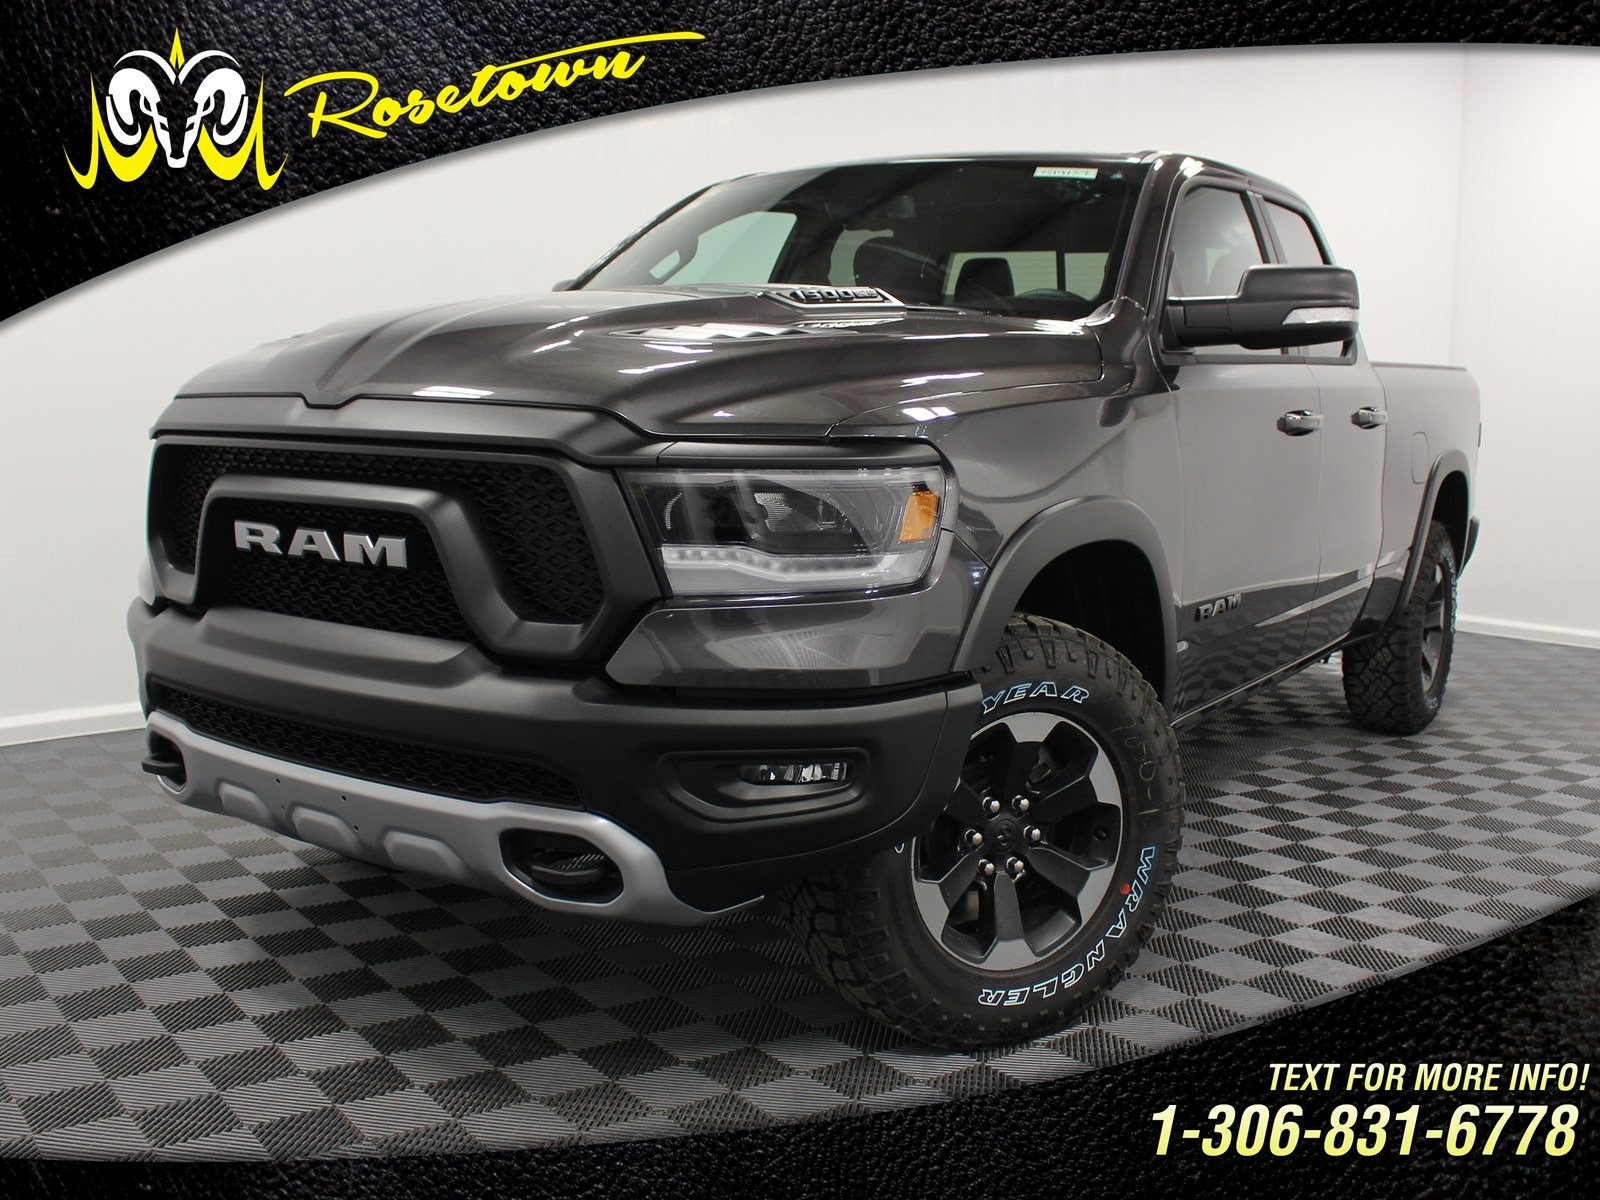 Tailight Wiring for 2016 Ram Rebel for Reverse New 2019 Ram 1500 Rebel 8 4 touchscreen Remote Start Of Tailight Wiring for 2016 Ram Rebel for Reverse